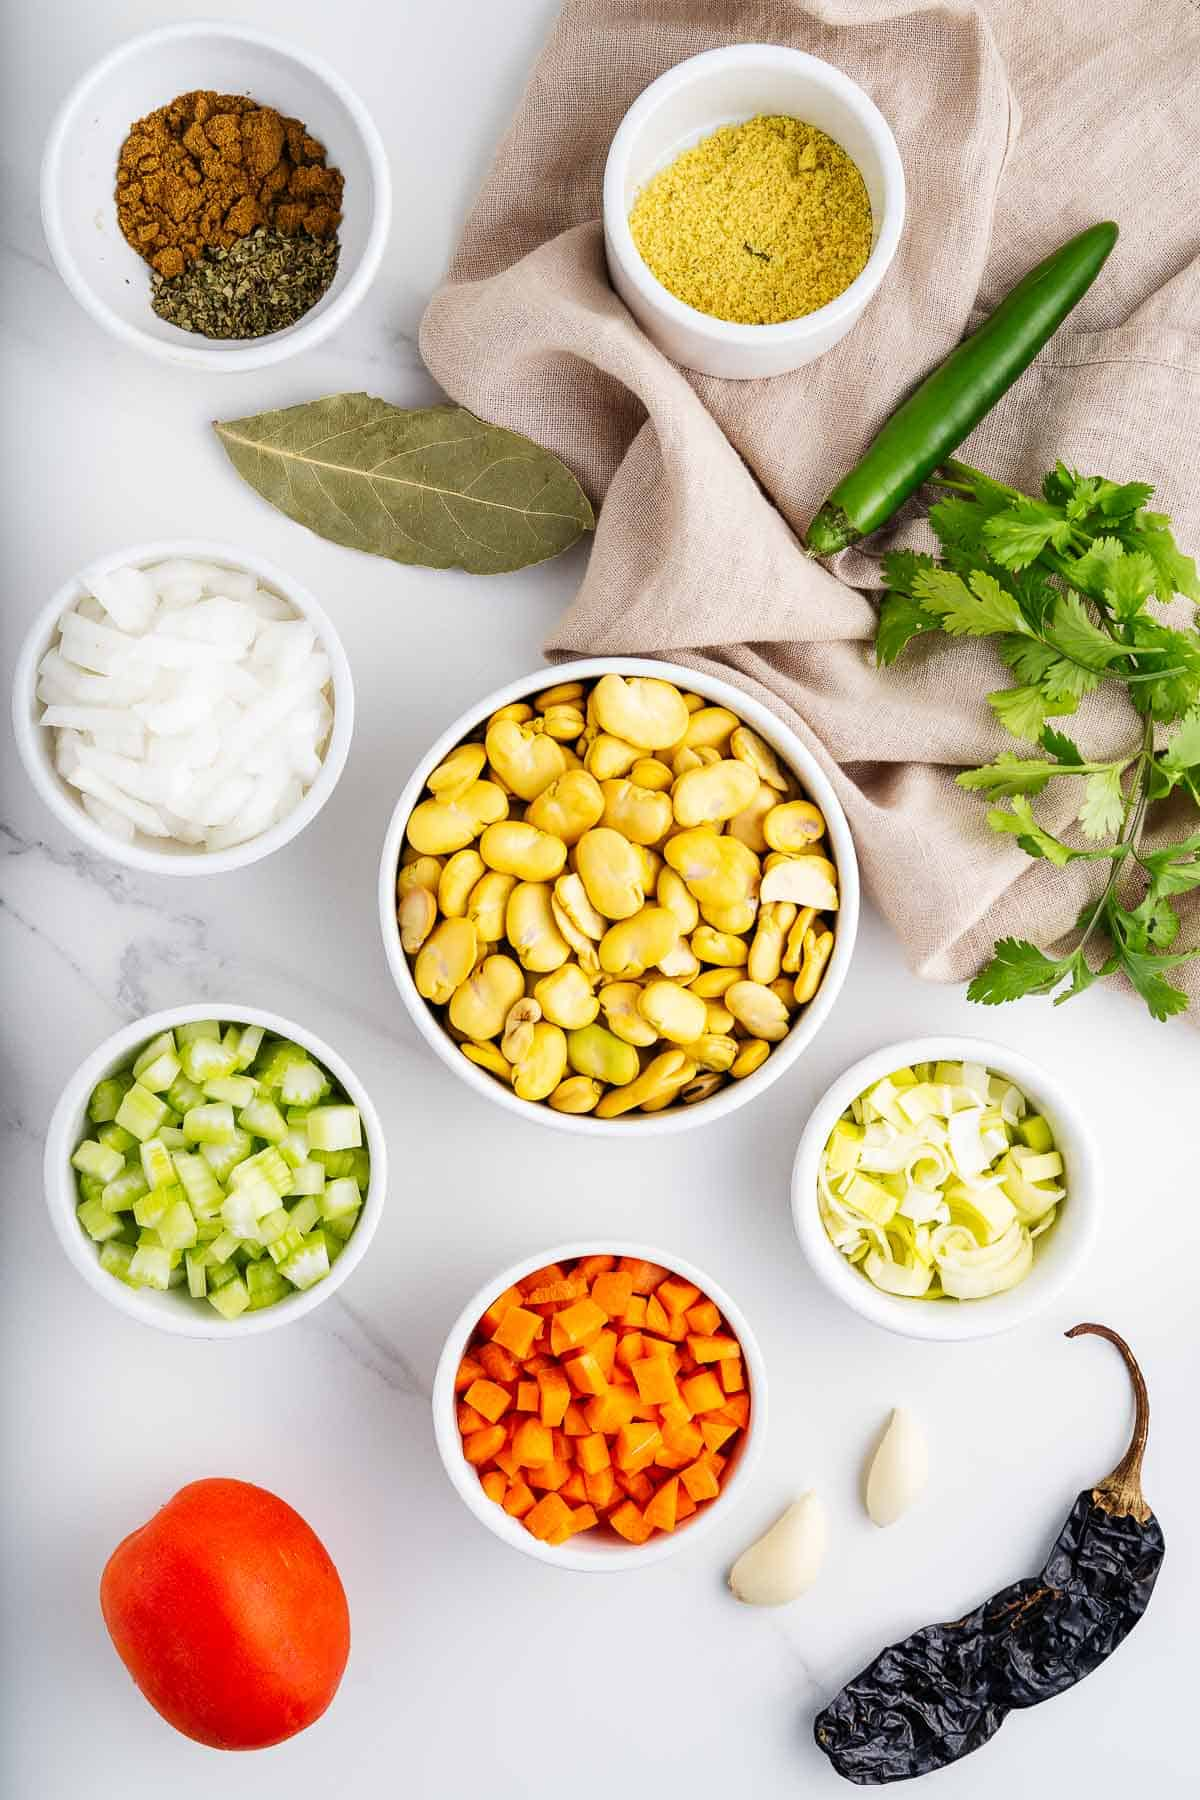 Fava Beans, Vegetables, Bay Leaves, Vegetable Stock, Spices, and Herbs